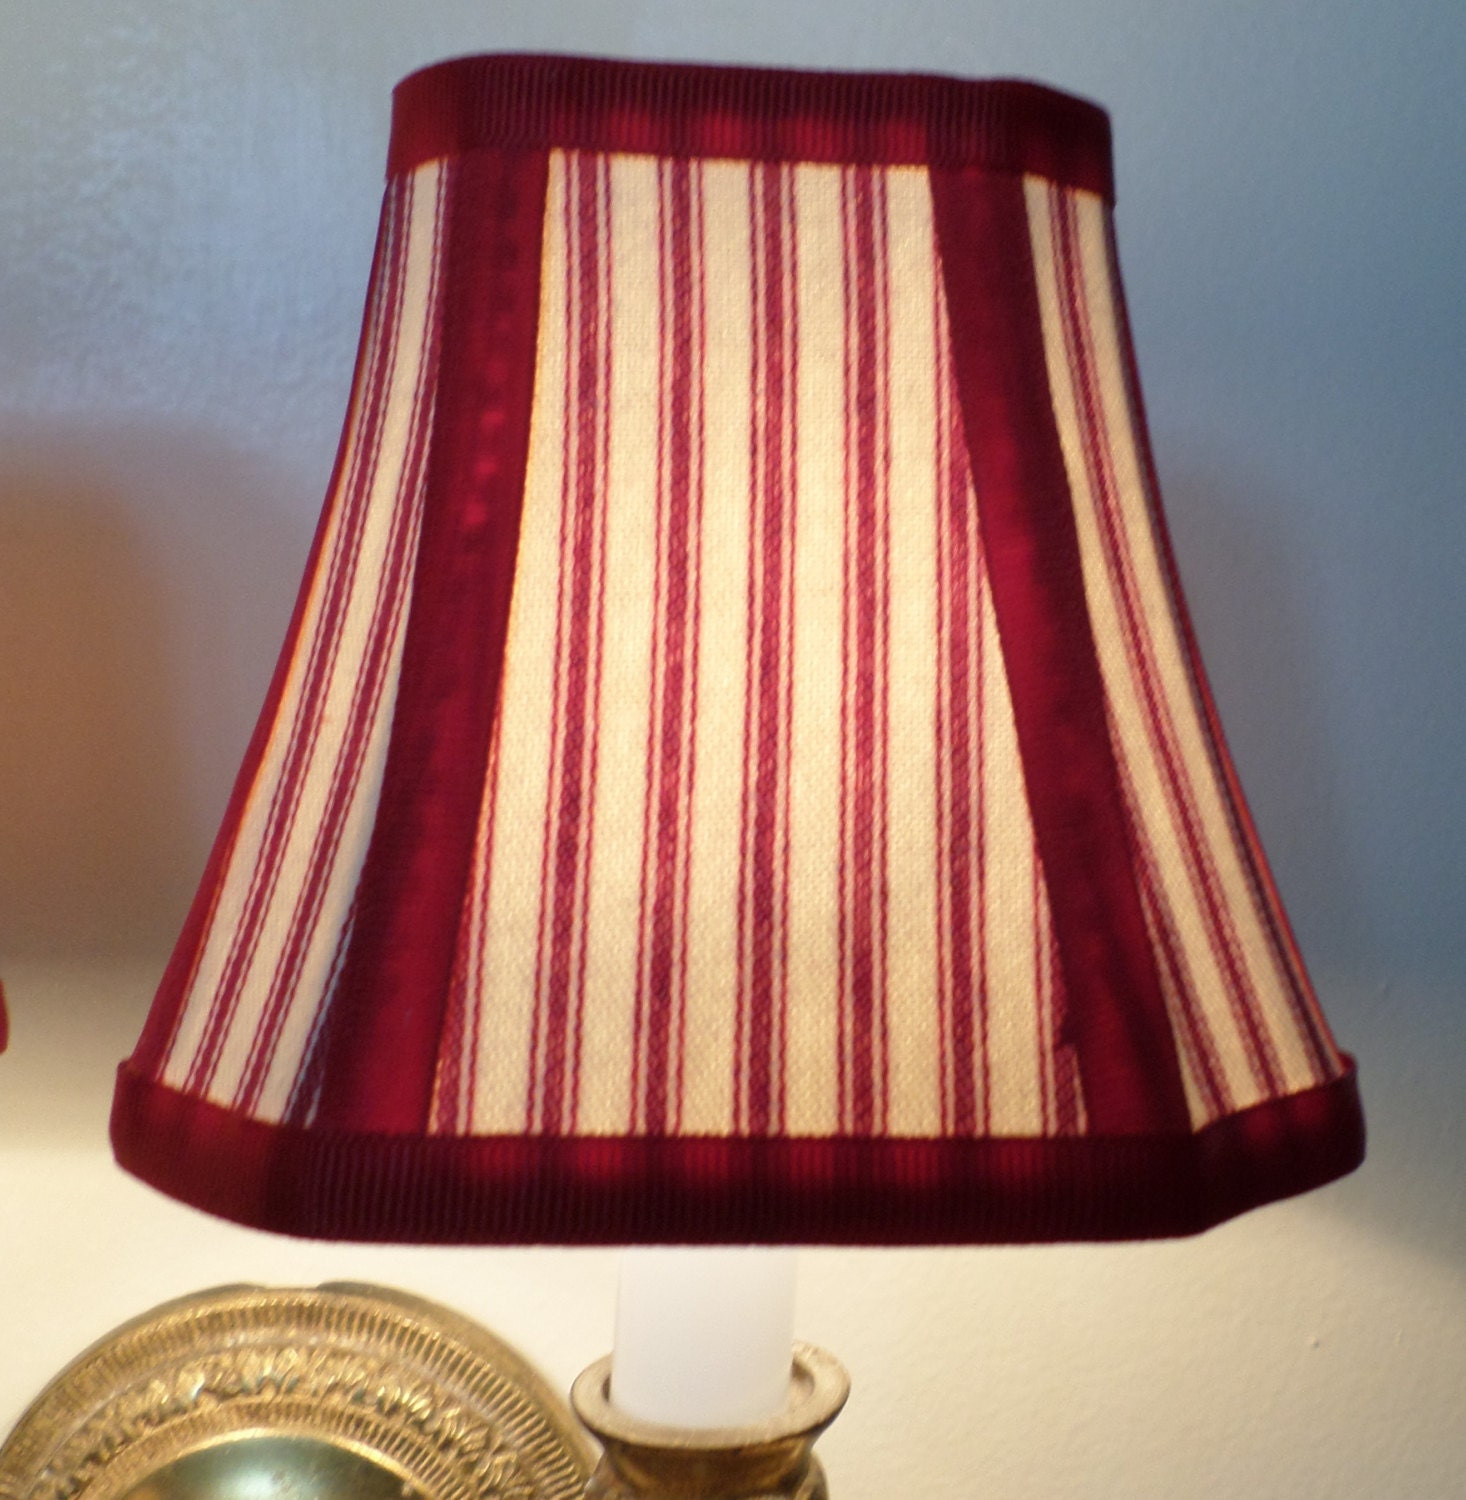 French Country Blue Lamps: French Country Chandelier Shades In A Fresh Red Pillow Ticking